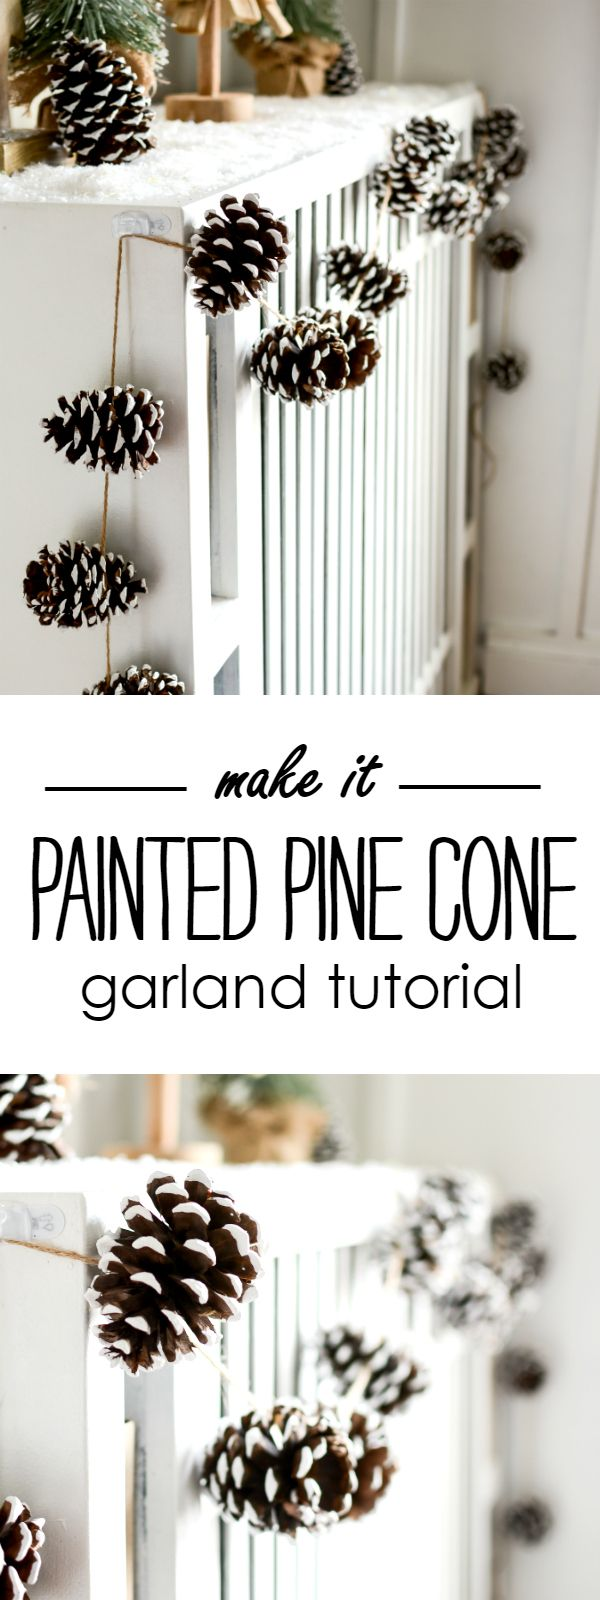 Holiday Mantel Fantel with Trees and painted pine cone garland. Includes tutorial with how to make painted pine cones and painted pine cone garland